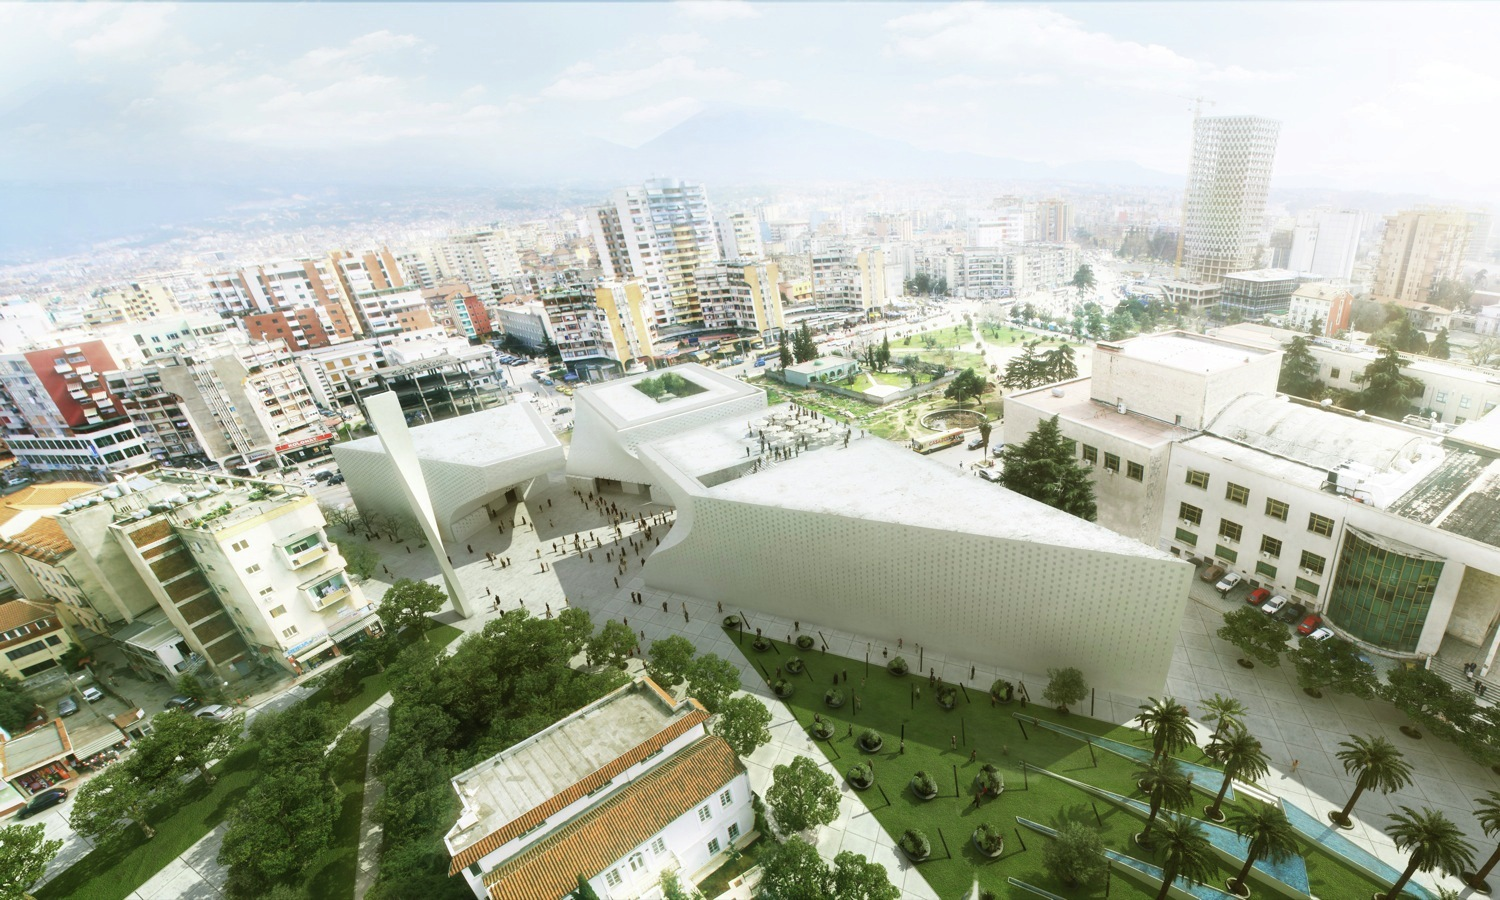 Architects Big Mosque and Islamic Cultural Center Tirana